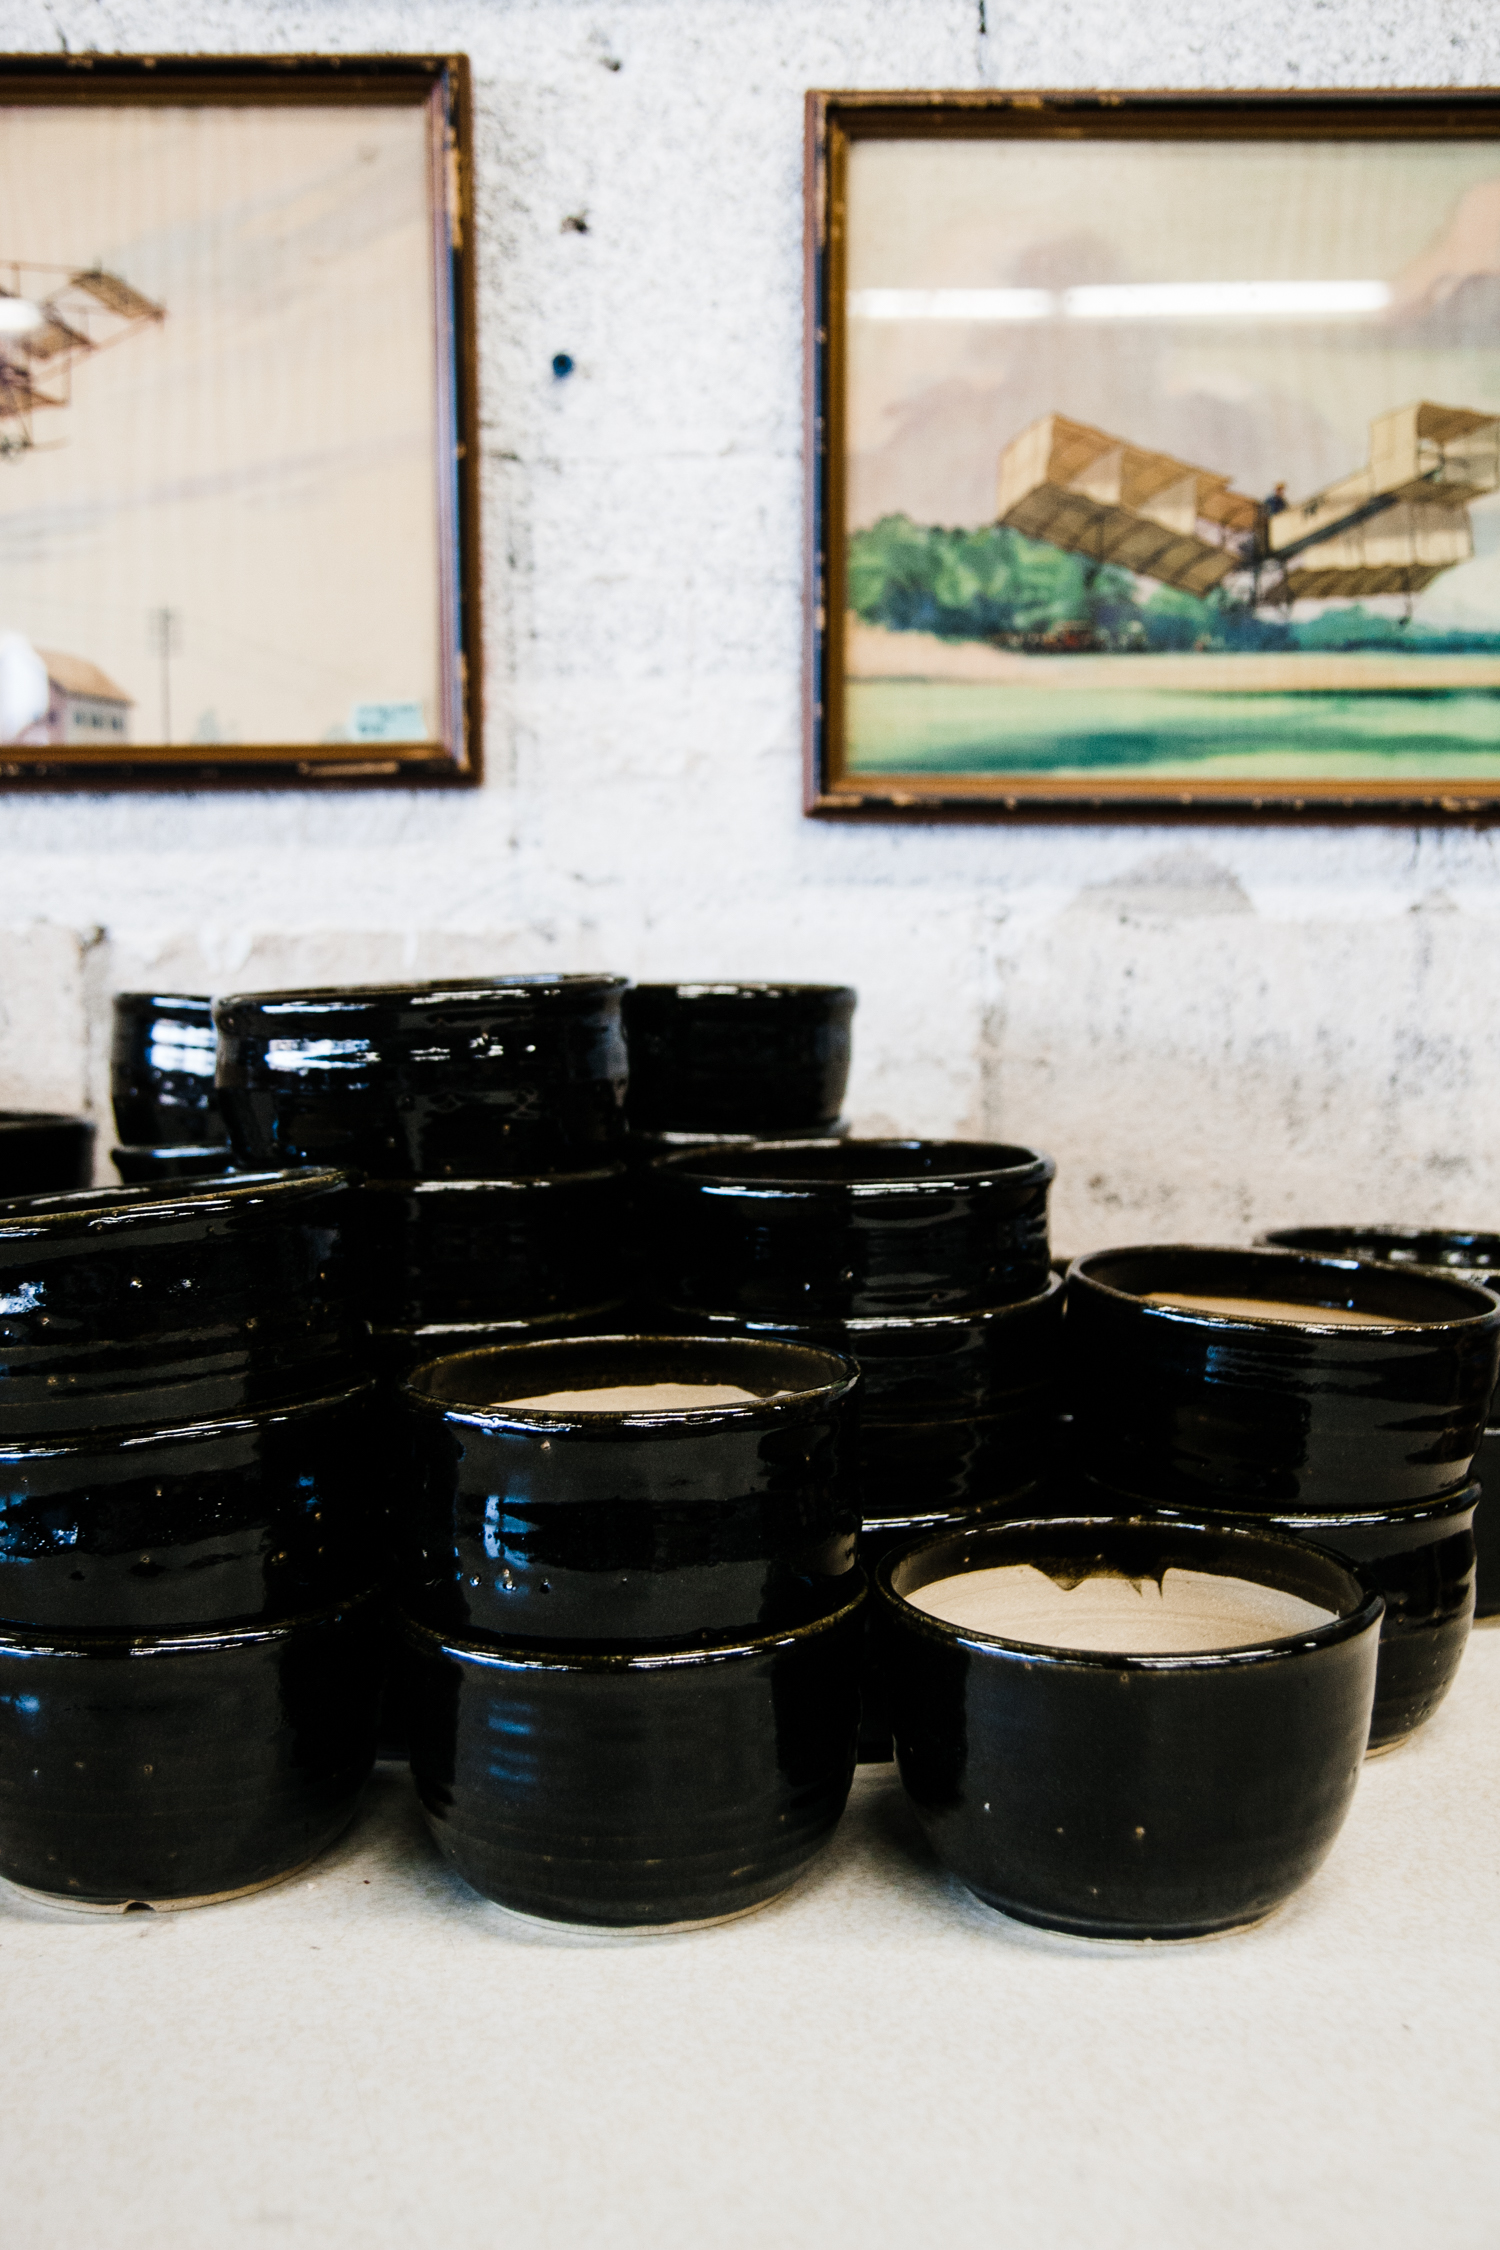 Springtime Succulent Planting Workshop Tuesday, April 3, at 6pm! Kris of  Foxy Pots  handmade these black beauties JUST FOR YOU. Join us and get plants and pottery and fun.